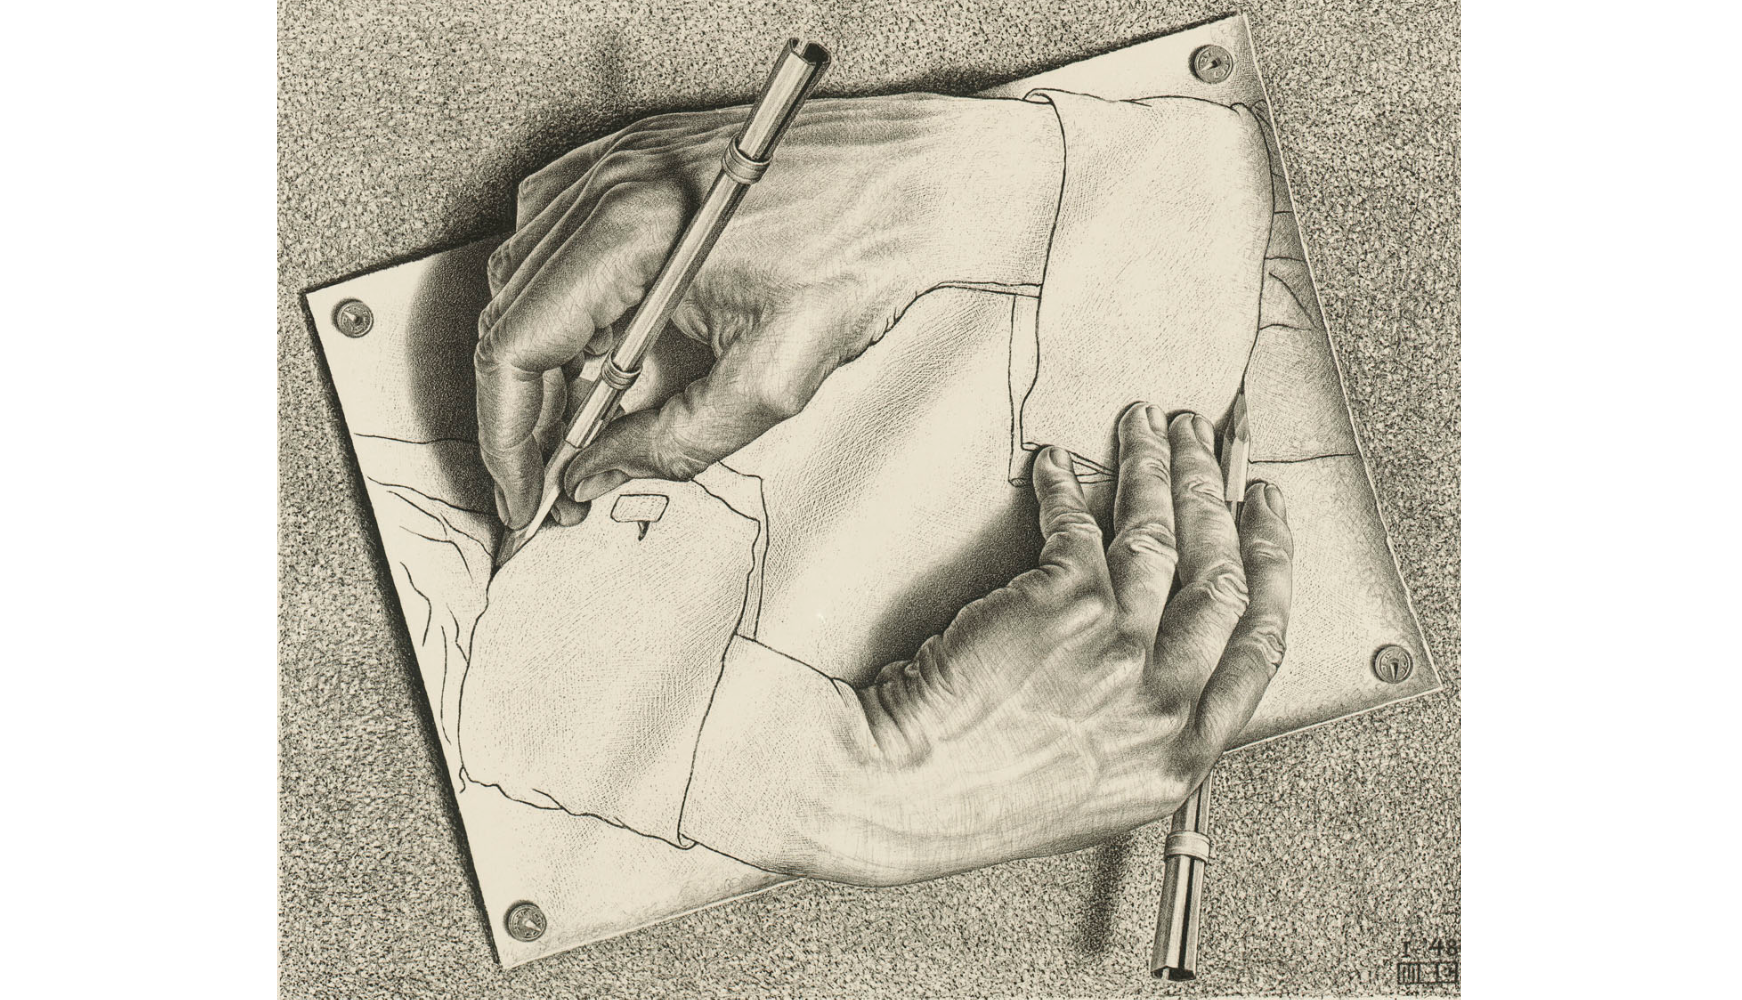 You know about MC Escher's art, but what about the man himself?